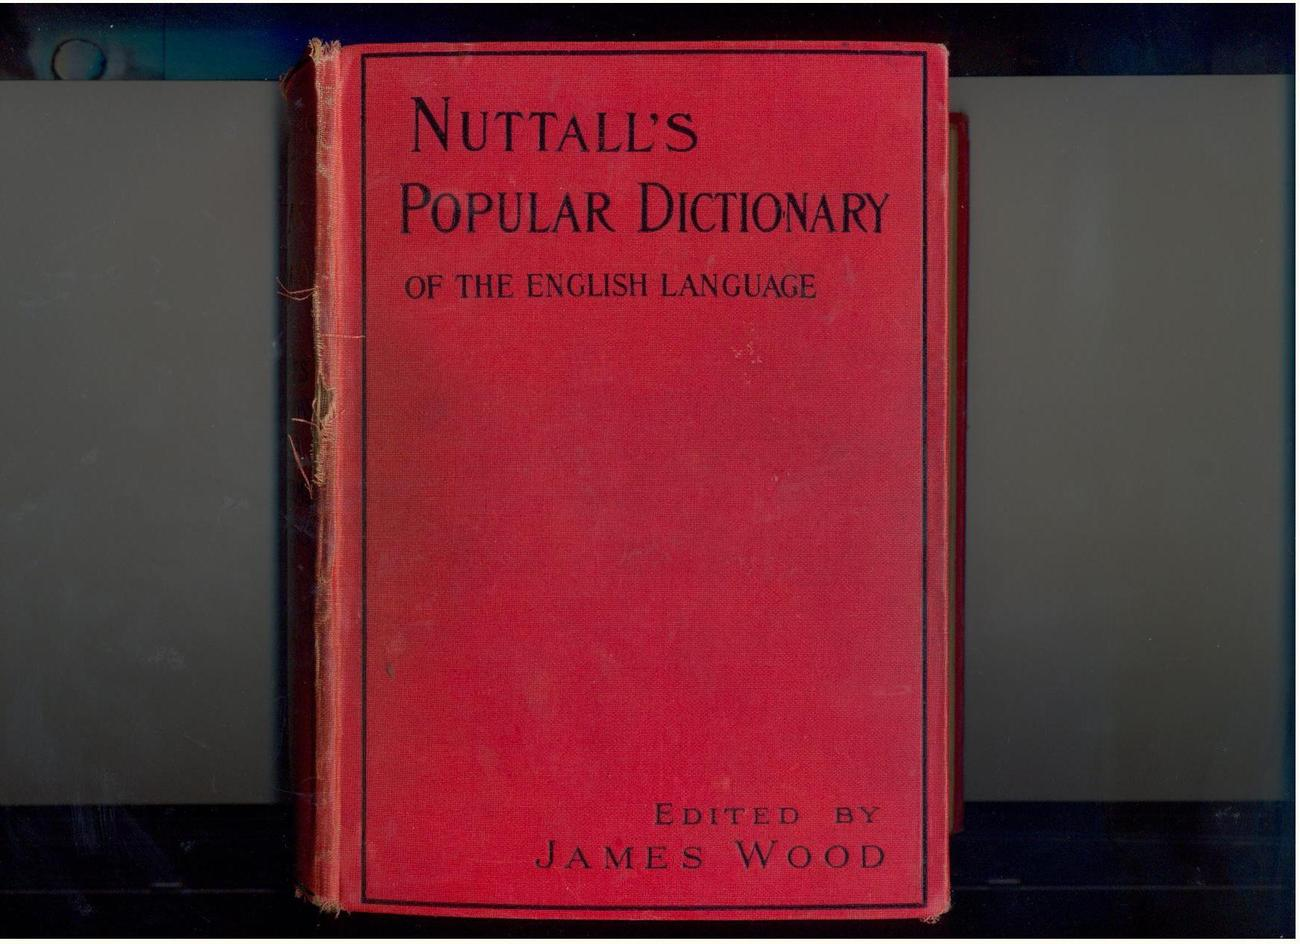 NUTTALL'S POPULAR DICTIONARY  circa 1930  U.K.  illustrated